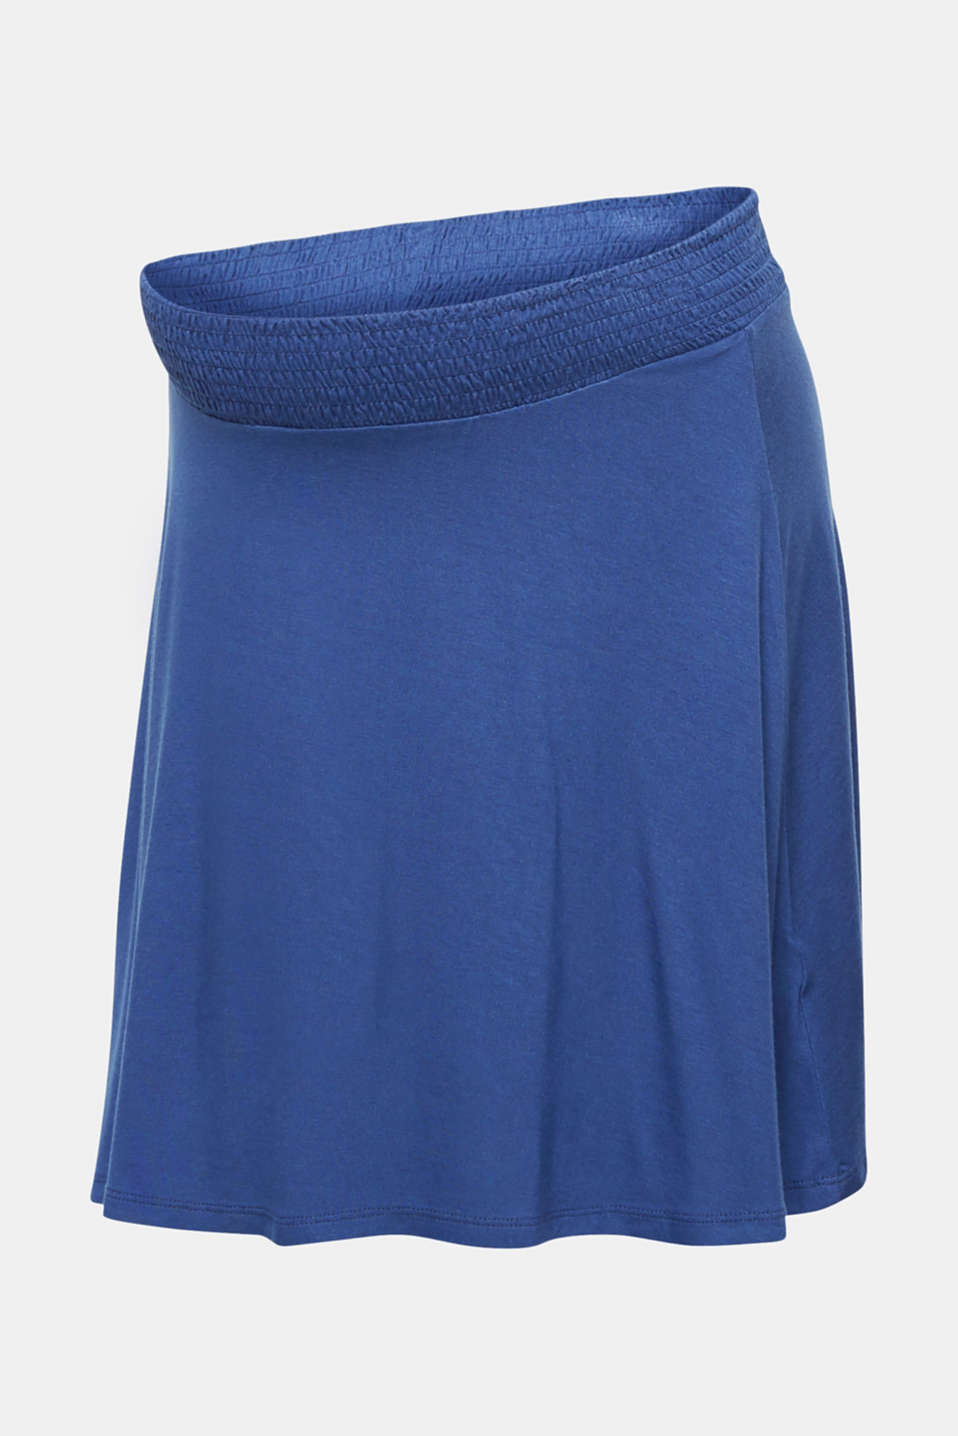 Stretch jersey skirt with a wide elasticated waistband, LCDARK BLUE, detail image number 7